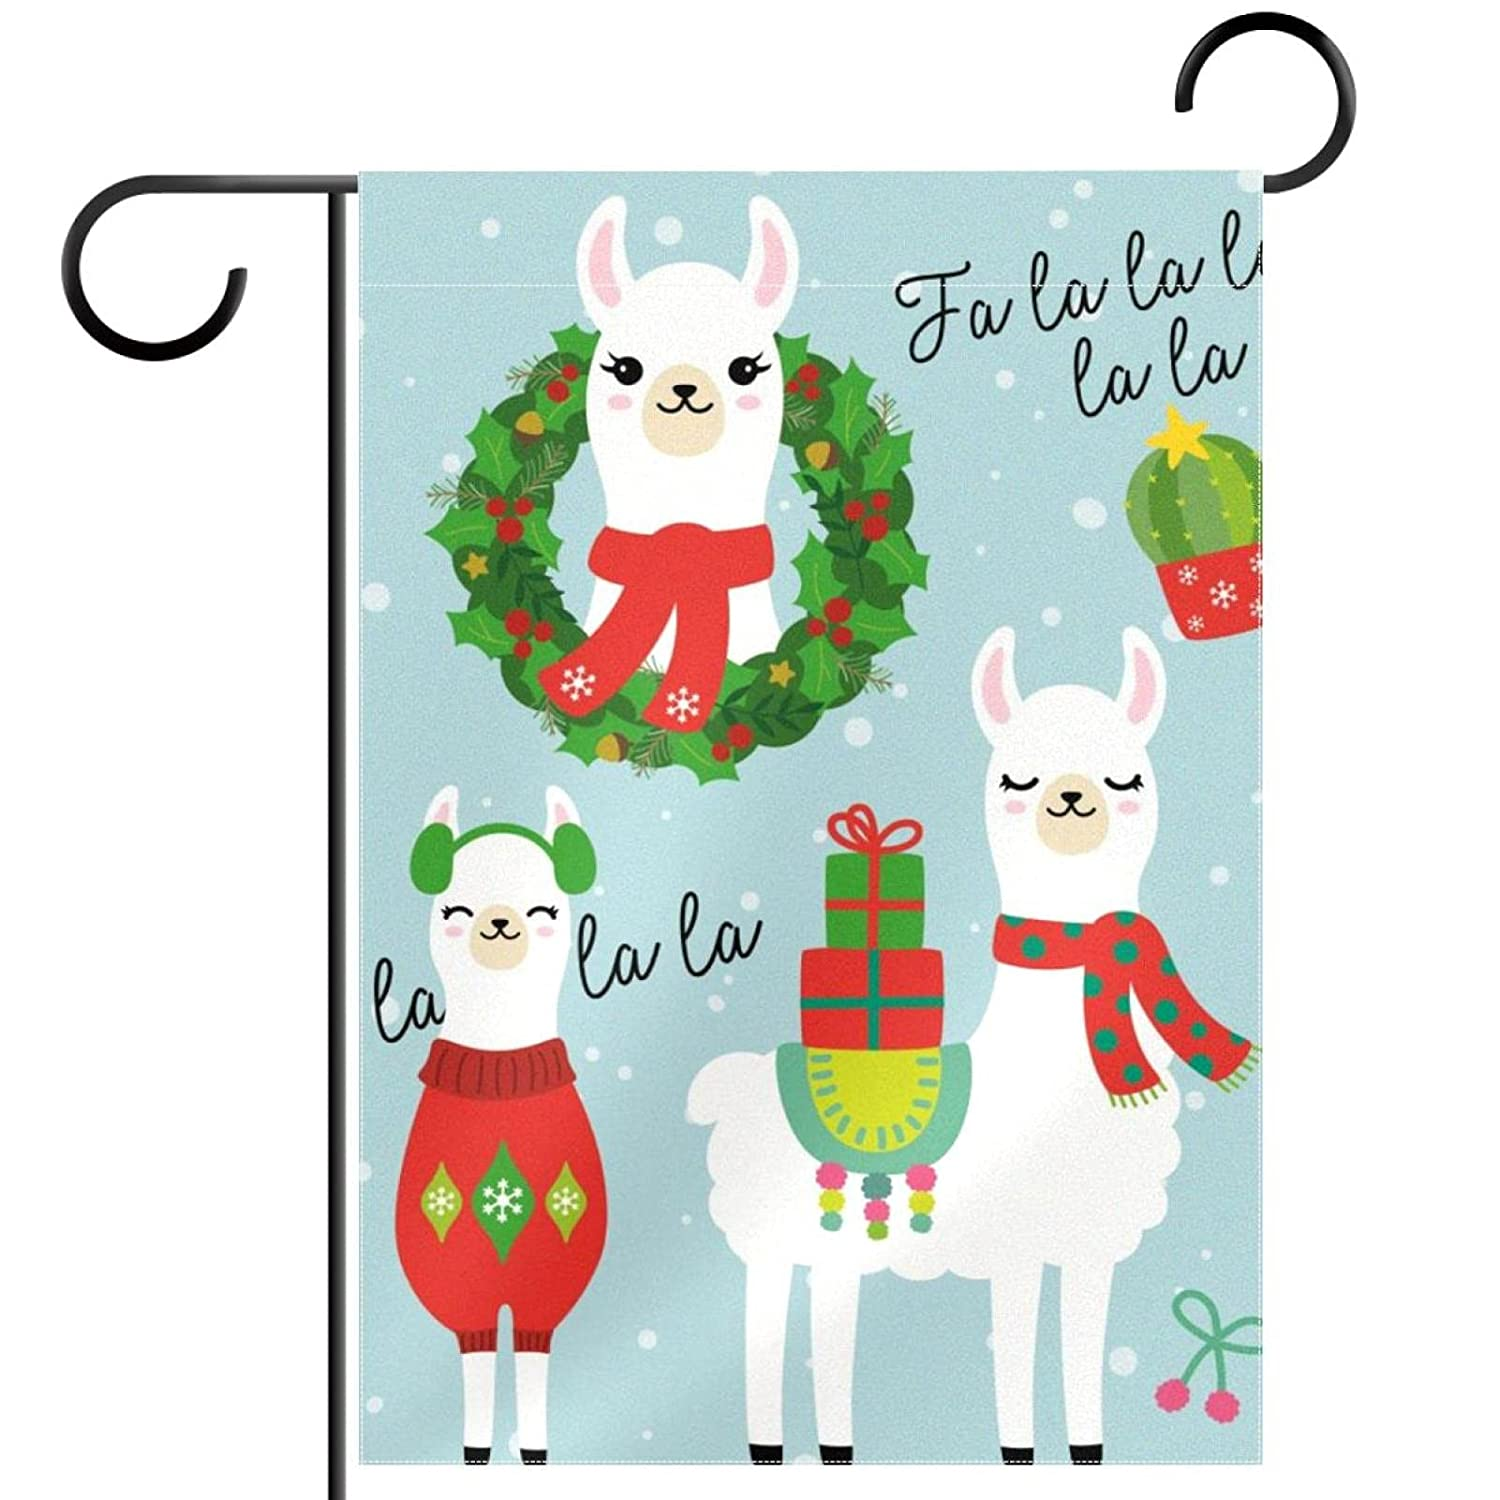 Garden Flag Christmas Cute Llama And Alpaca 12×18 Inch Double Sided Design Decorative Yard Banner Garden Flag Holiday Flag for Party Home Outdoor Decoration